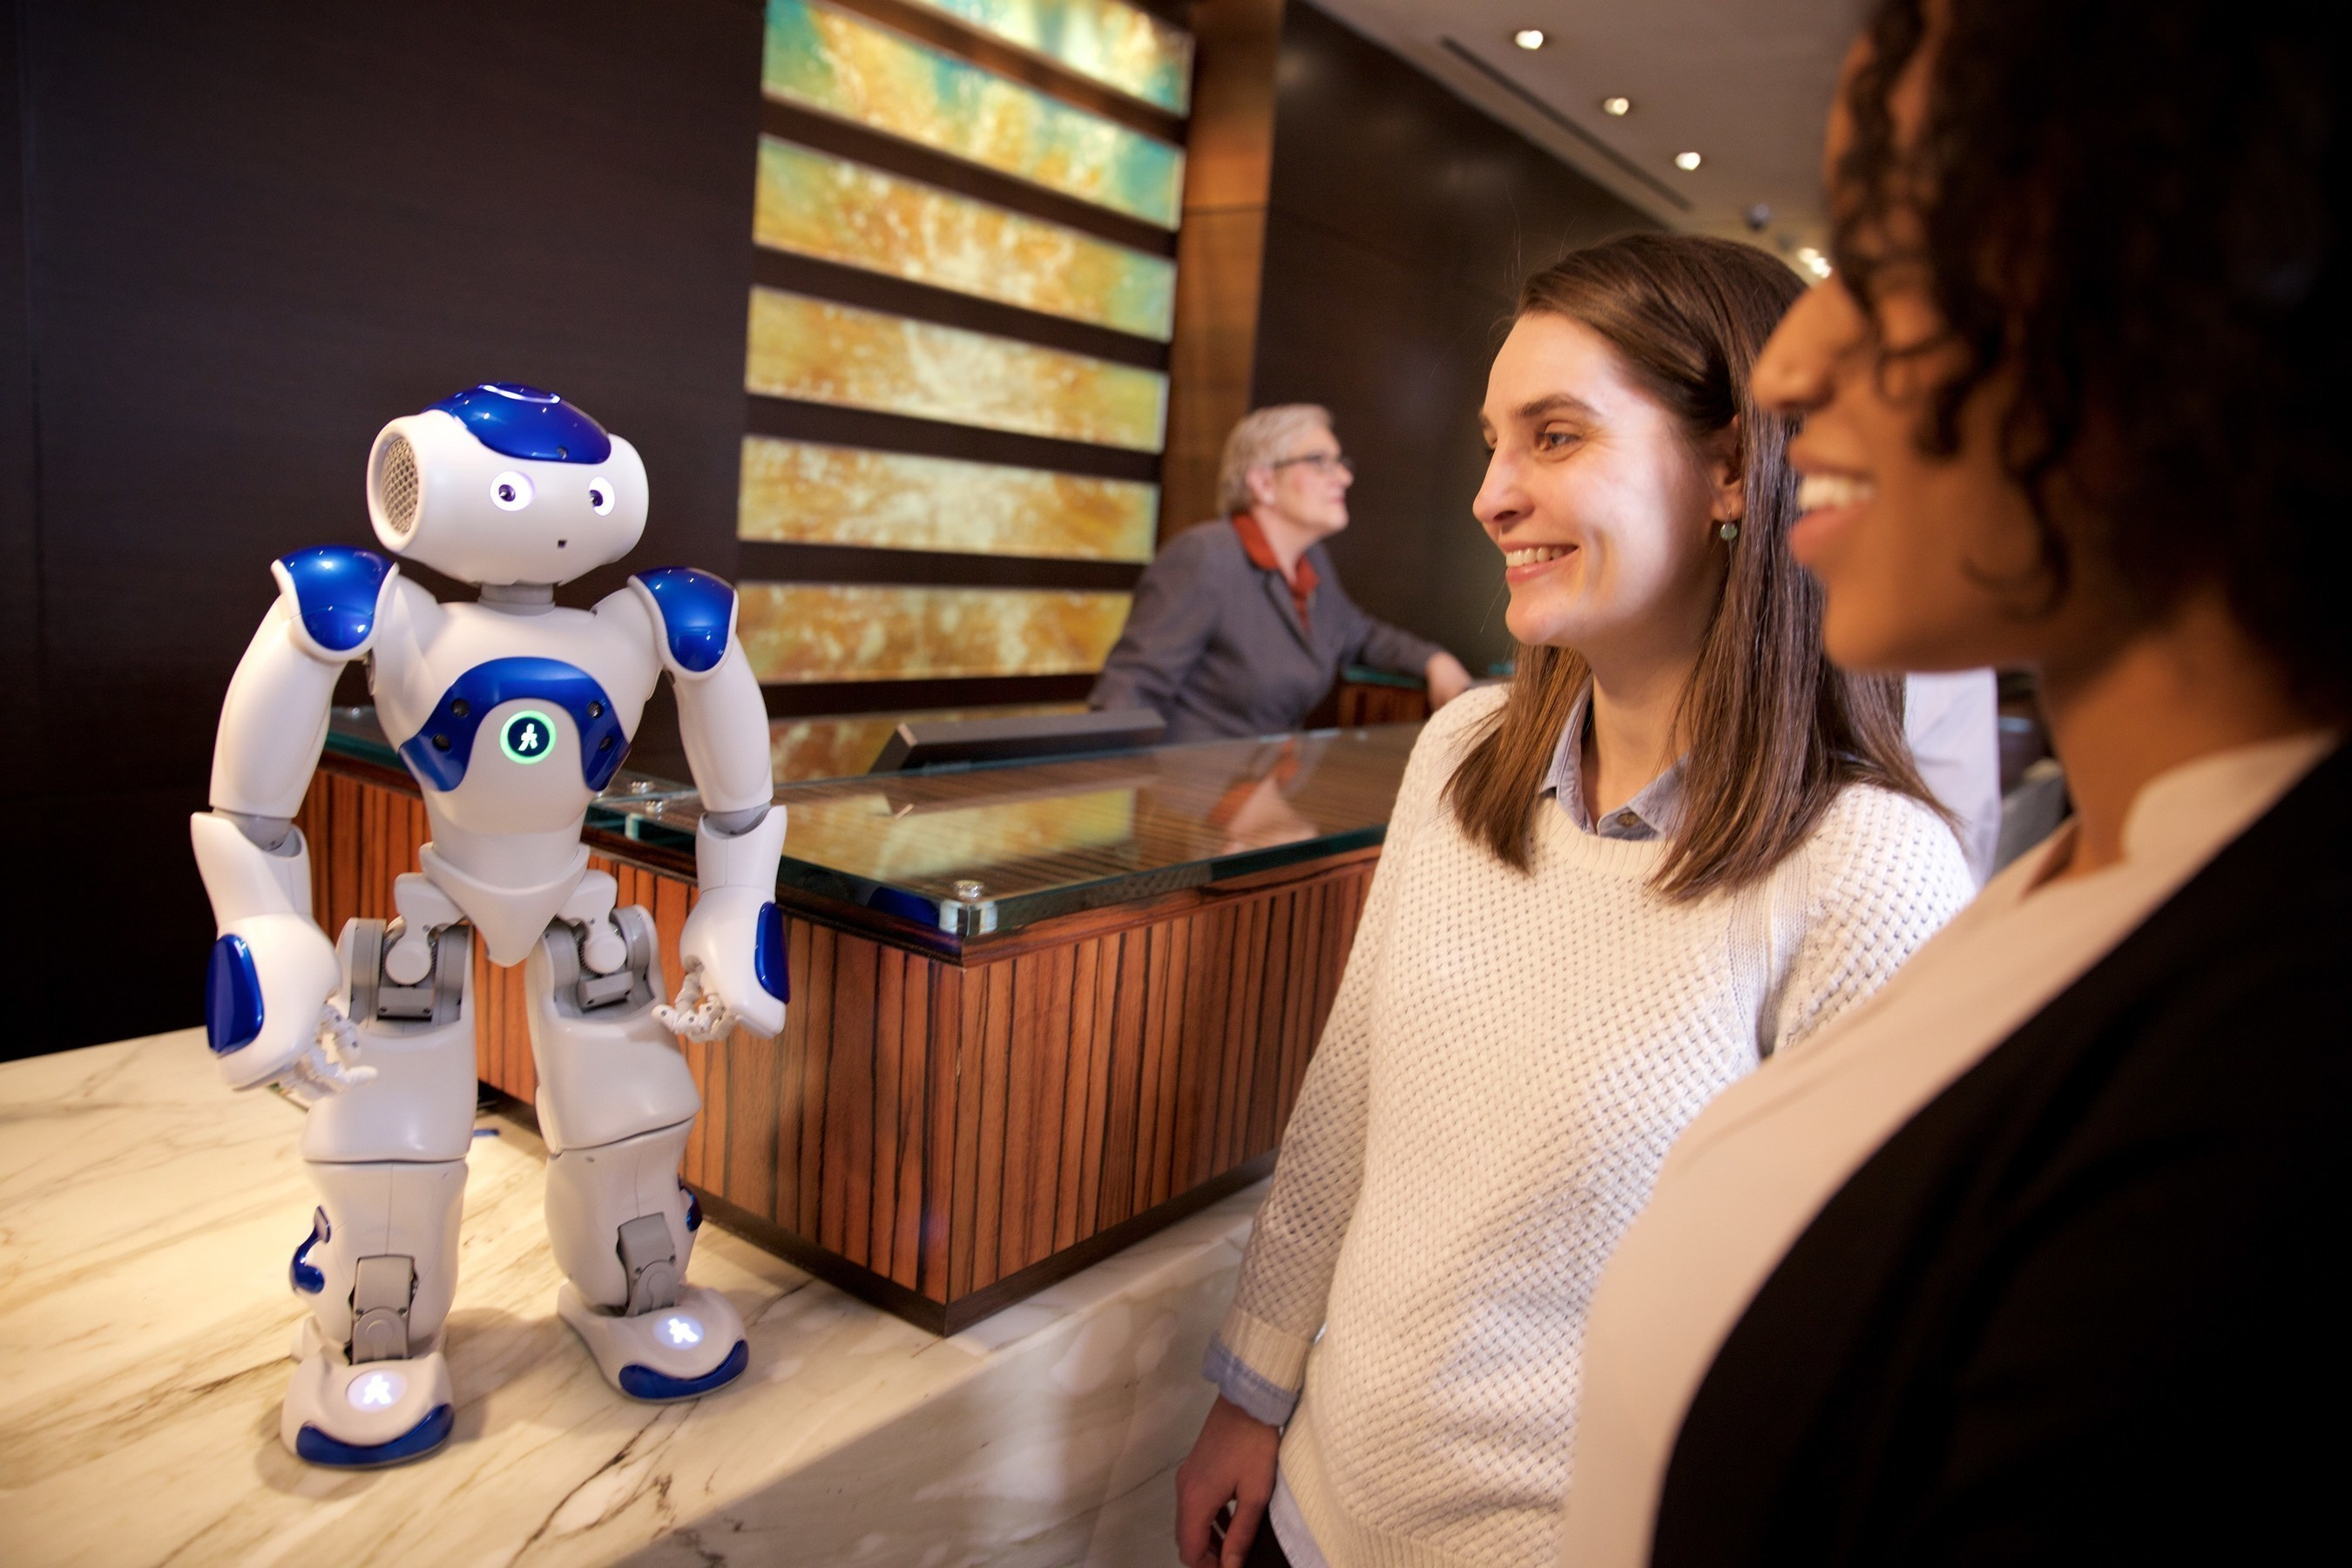 """Visitors to the Hilton Hotel in McLean, Va. meet """"Connie,"""" a robot concierge named after Conrad Hilton and powered by IBM Watson and WayBlazer. Connie, in pilot testing at the hotel, uses cognitive computing and machine learning to answer questions posed in natural language about the hotel, local tourist attractions and restaurants -- while learning with each interaction. (Photo courtesy of Green Buzz Agency/Feature Photo Service for IBM)"""